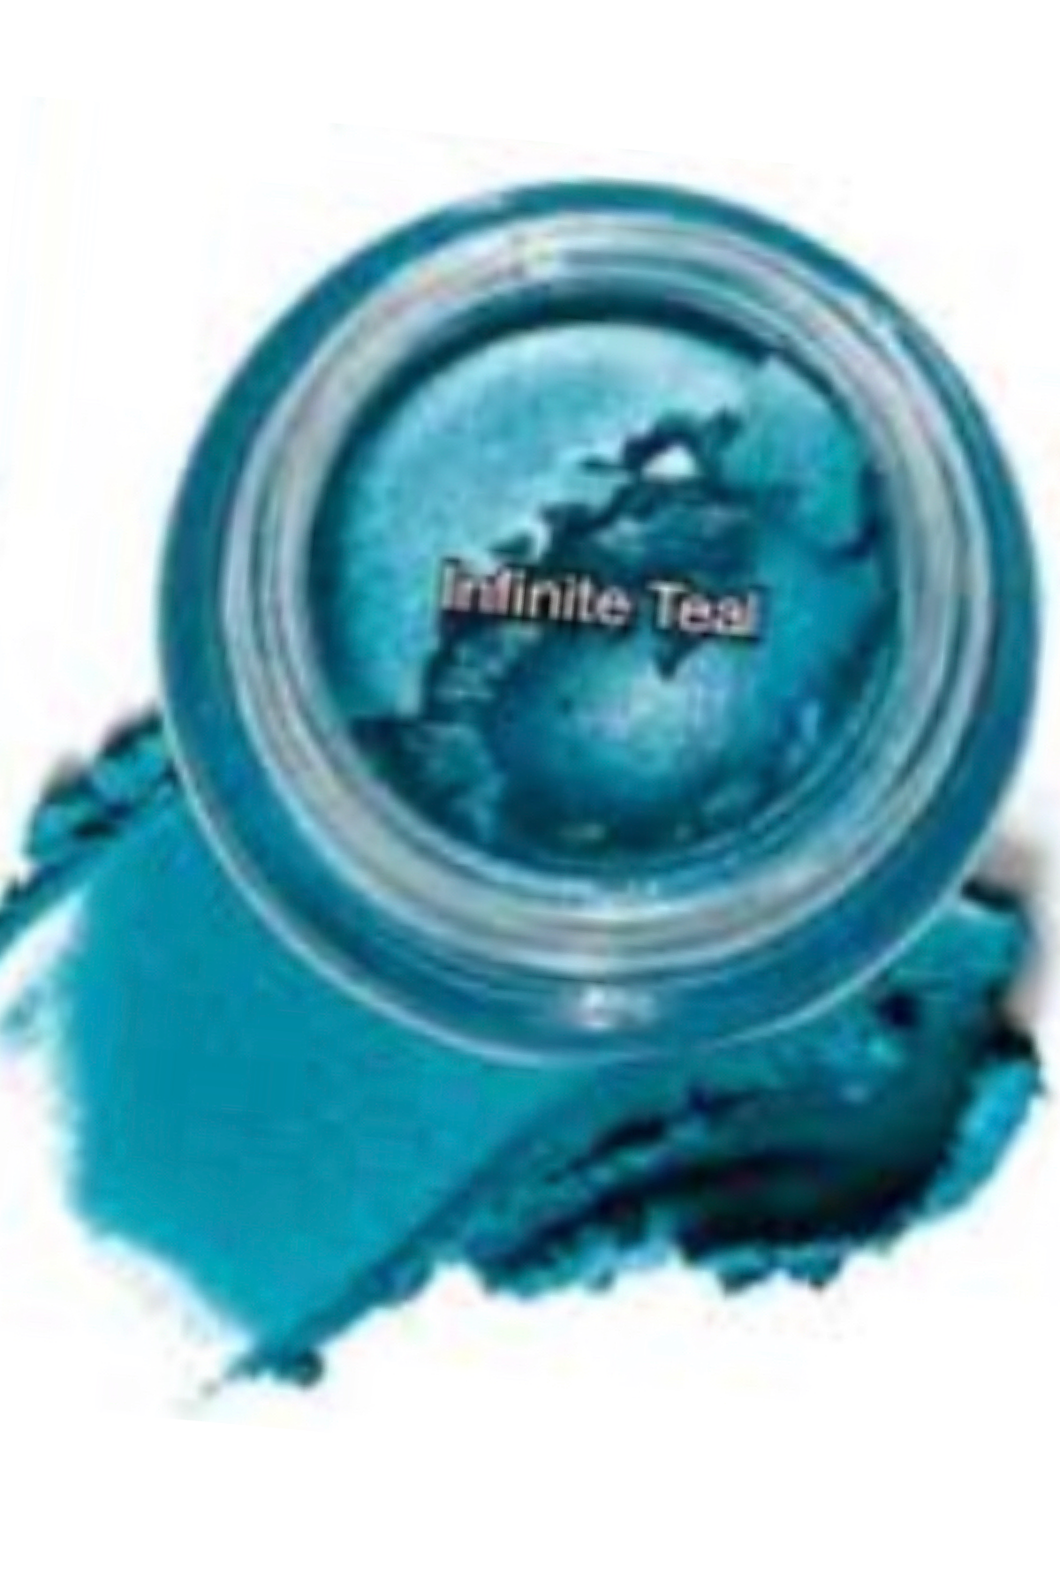 Infinite Teal Mark 18hr Eyeshadow Ink 4g